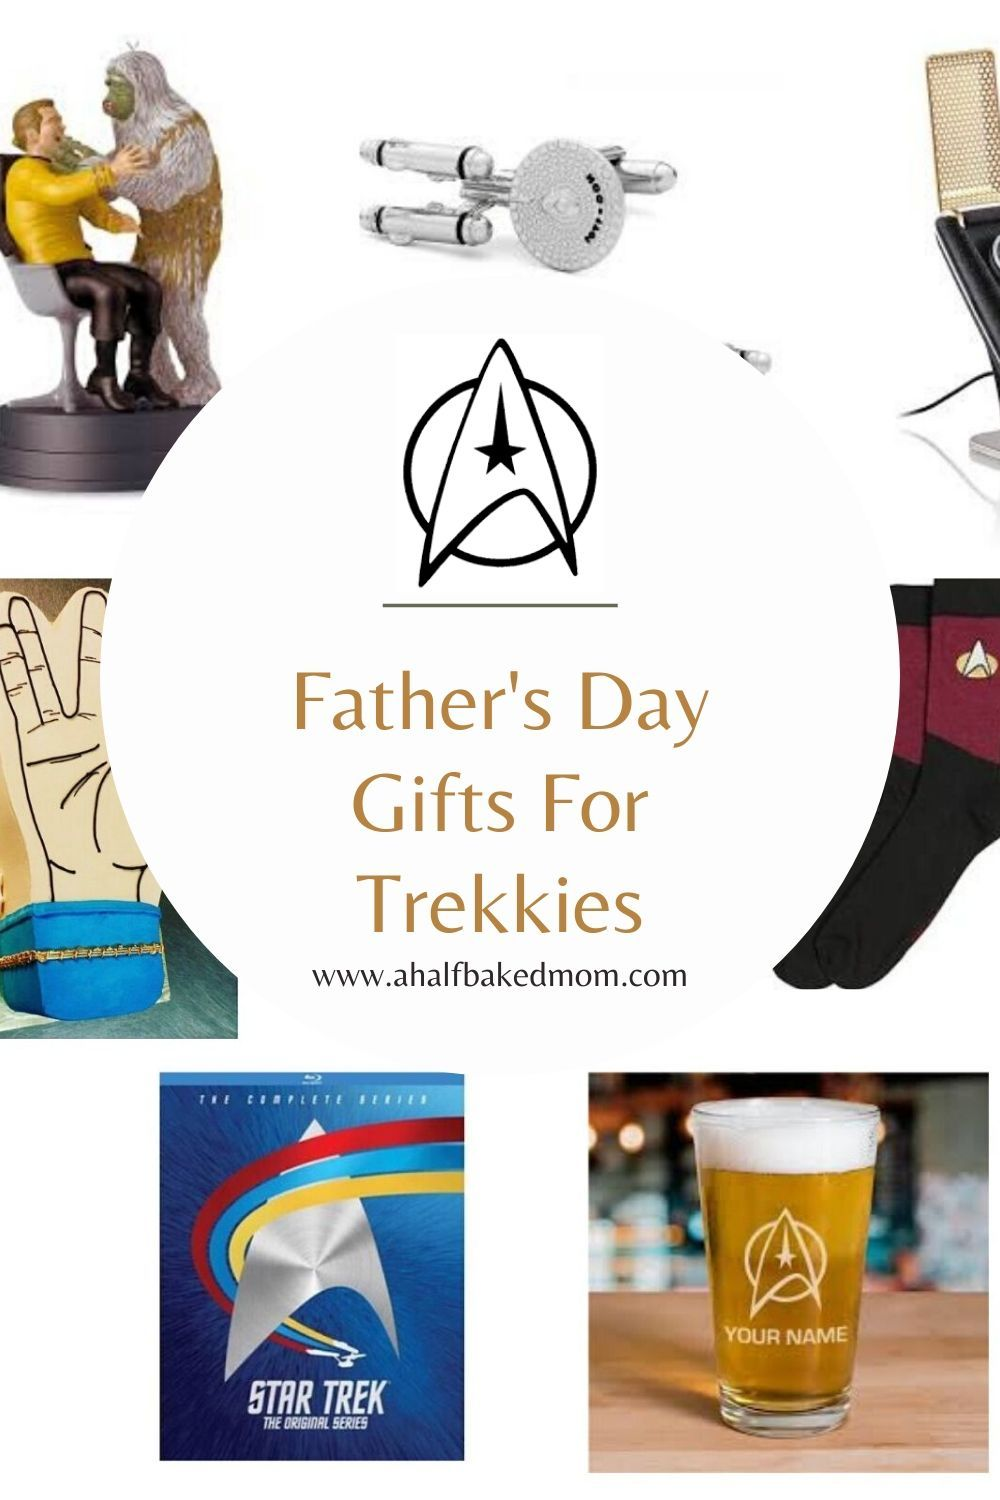 Fathers day gift guide for trekkies in 2020 fathers day